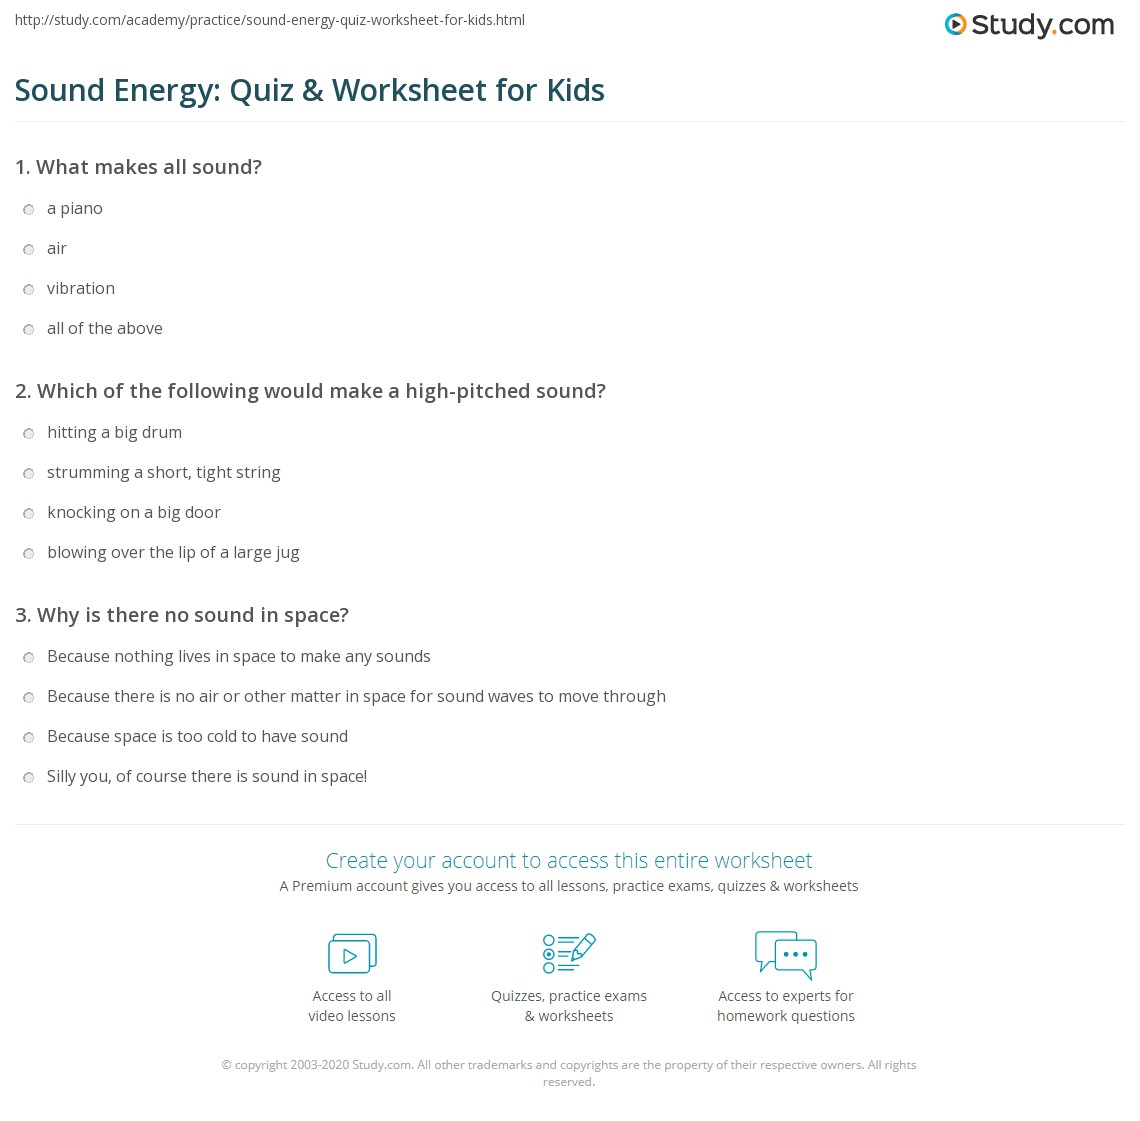 Sound Energy: Quiz & Worksheet for Kids | Study.com